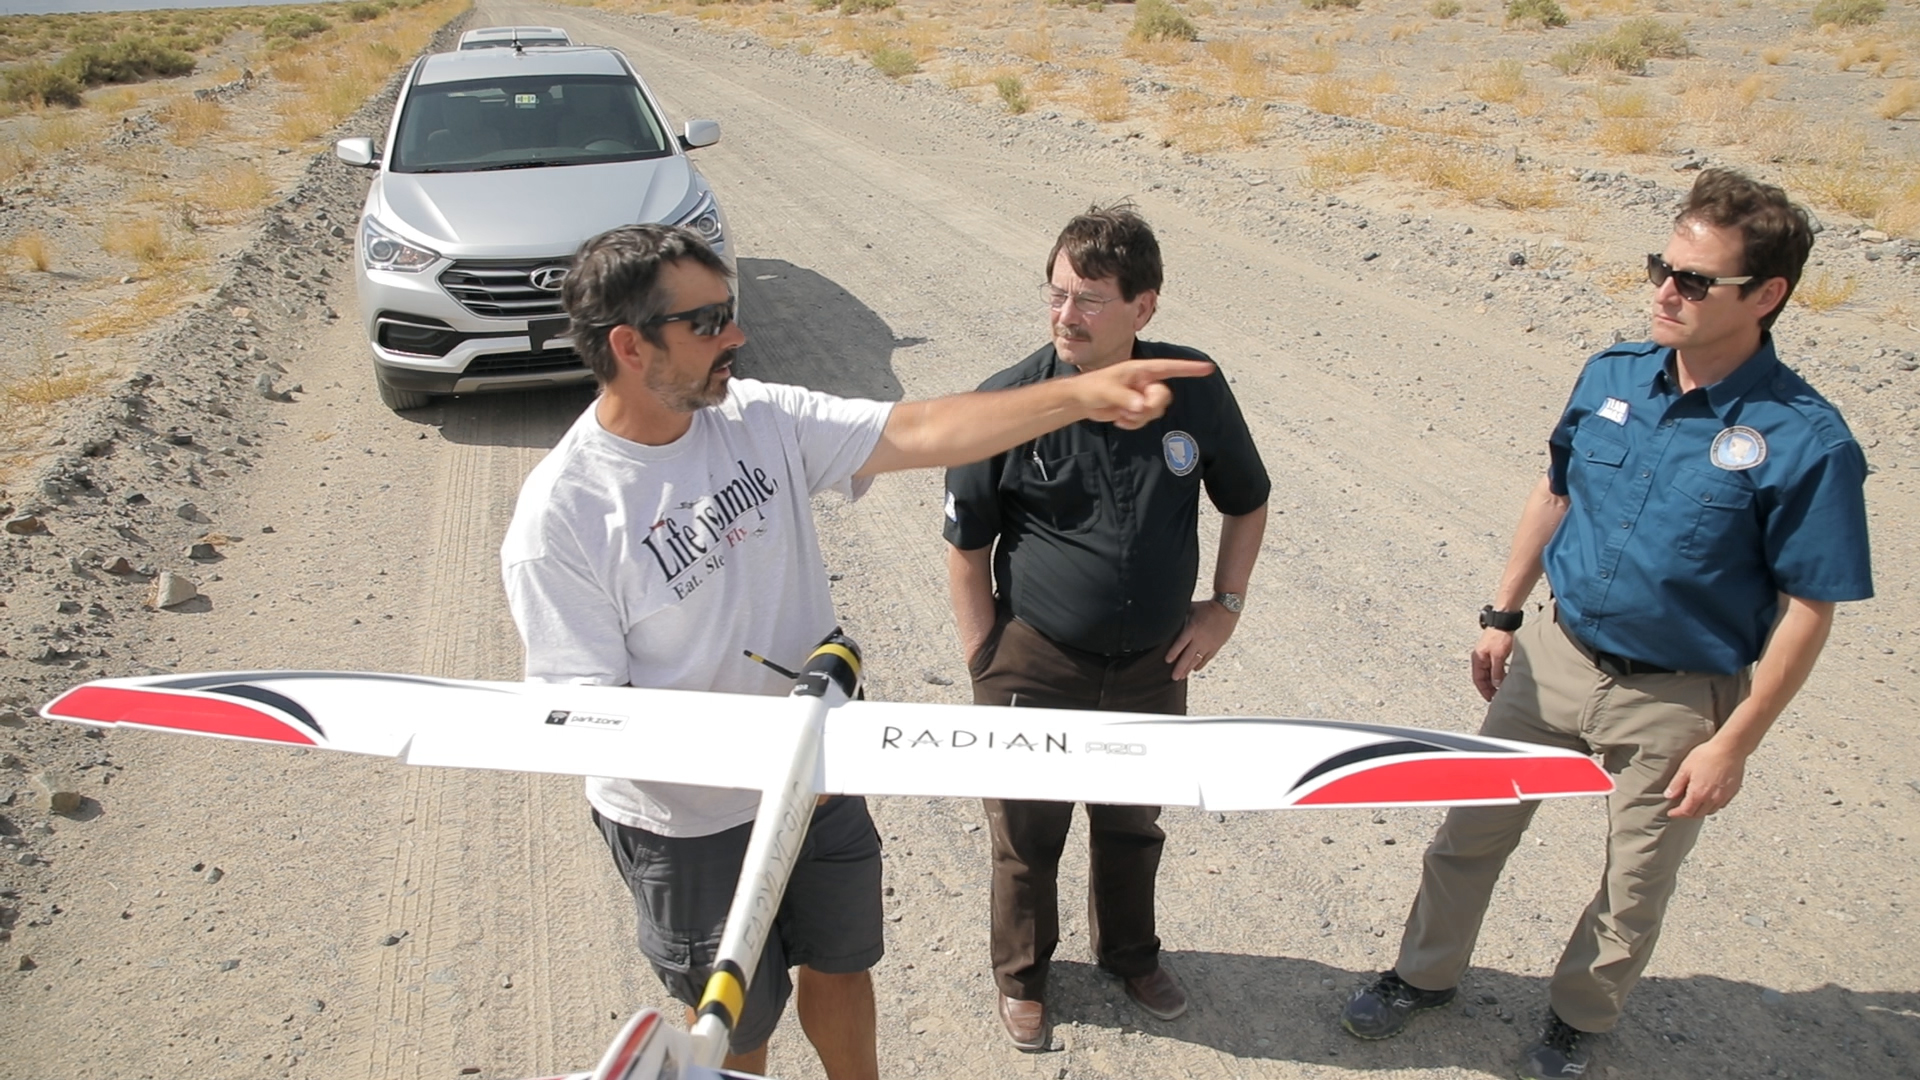 Jim Piavis of Microsoft talks to NIAS workers between sailplane flights near Hawthorne, Nevada. Photography by John Brecher for Microsoft.